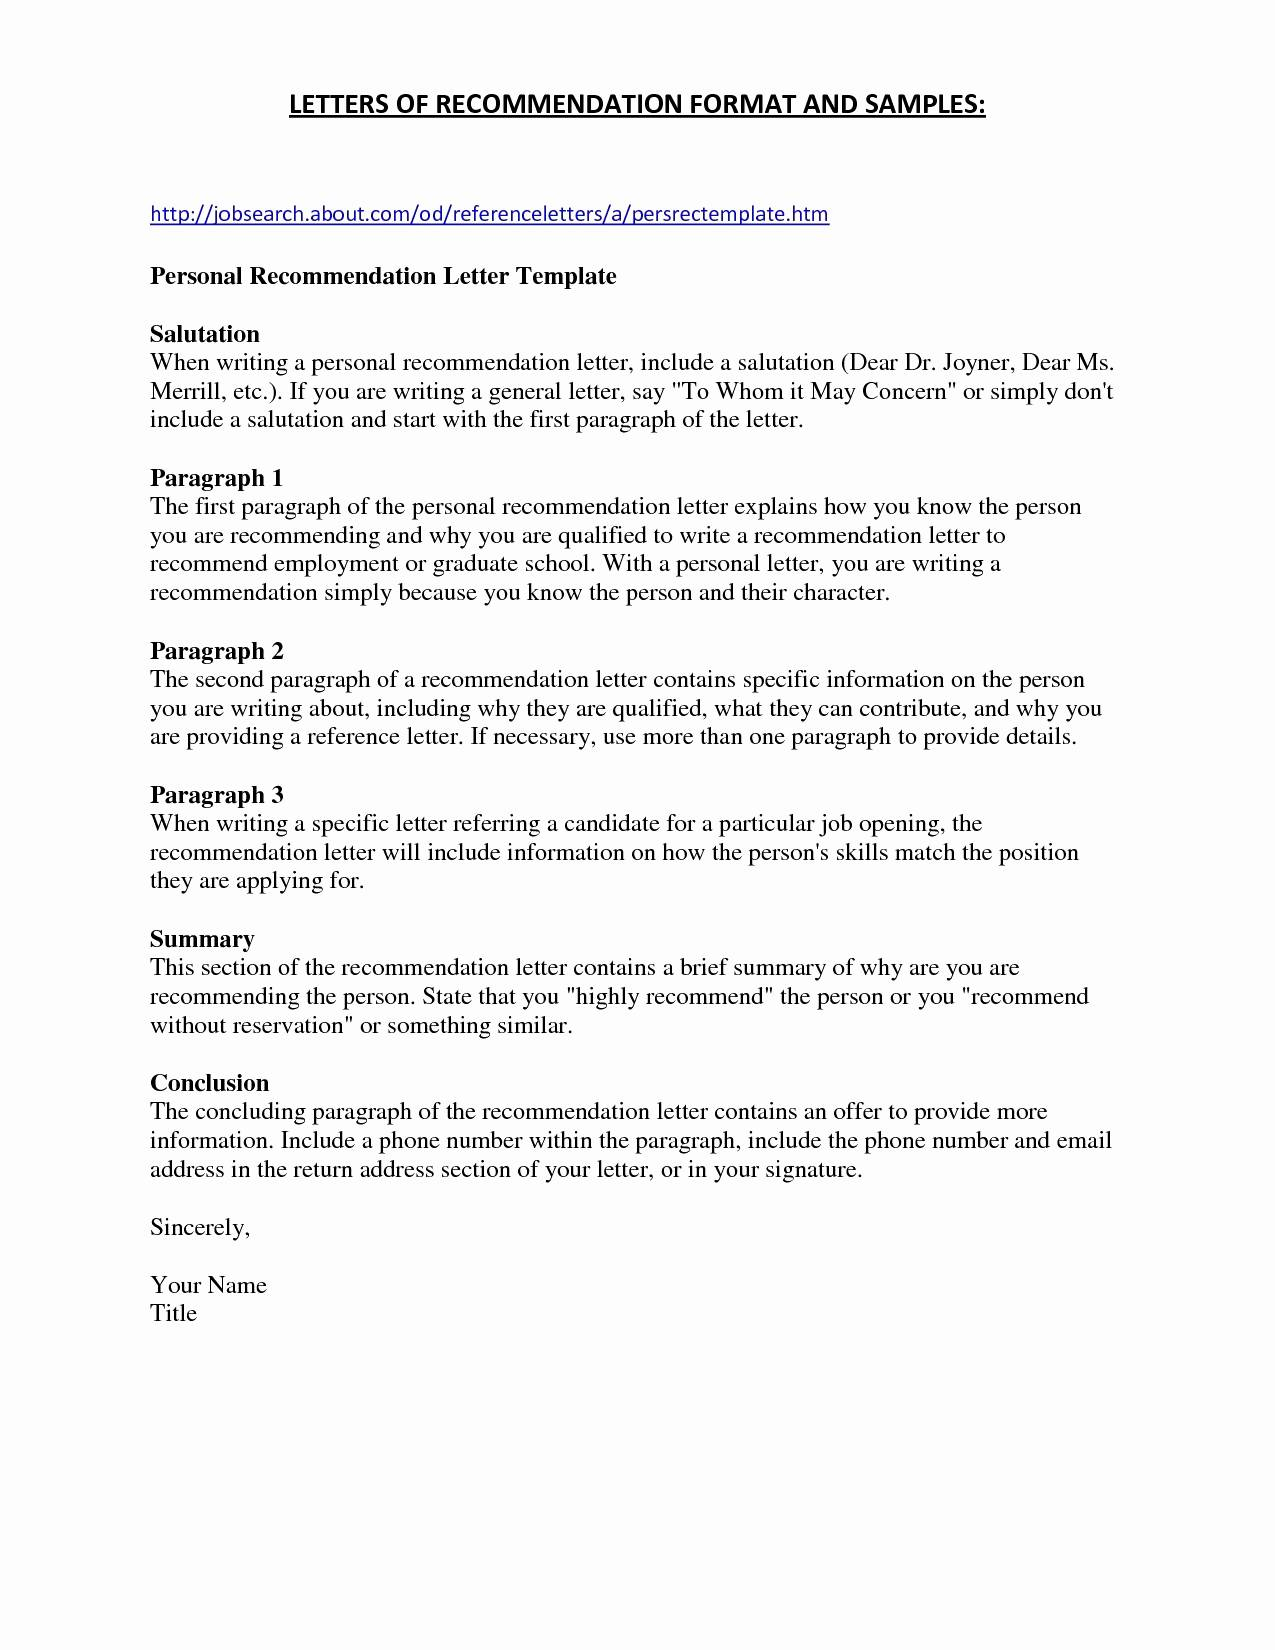 executive assistant cover letter template real estate receptionist cover letter awesome 11 unique cover letter